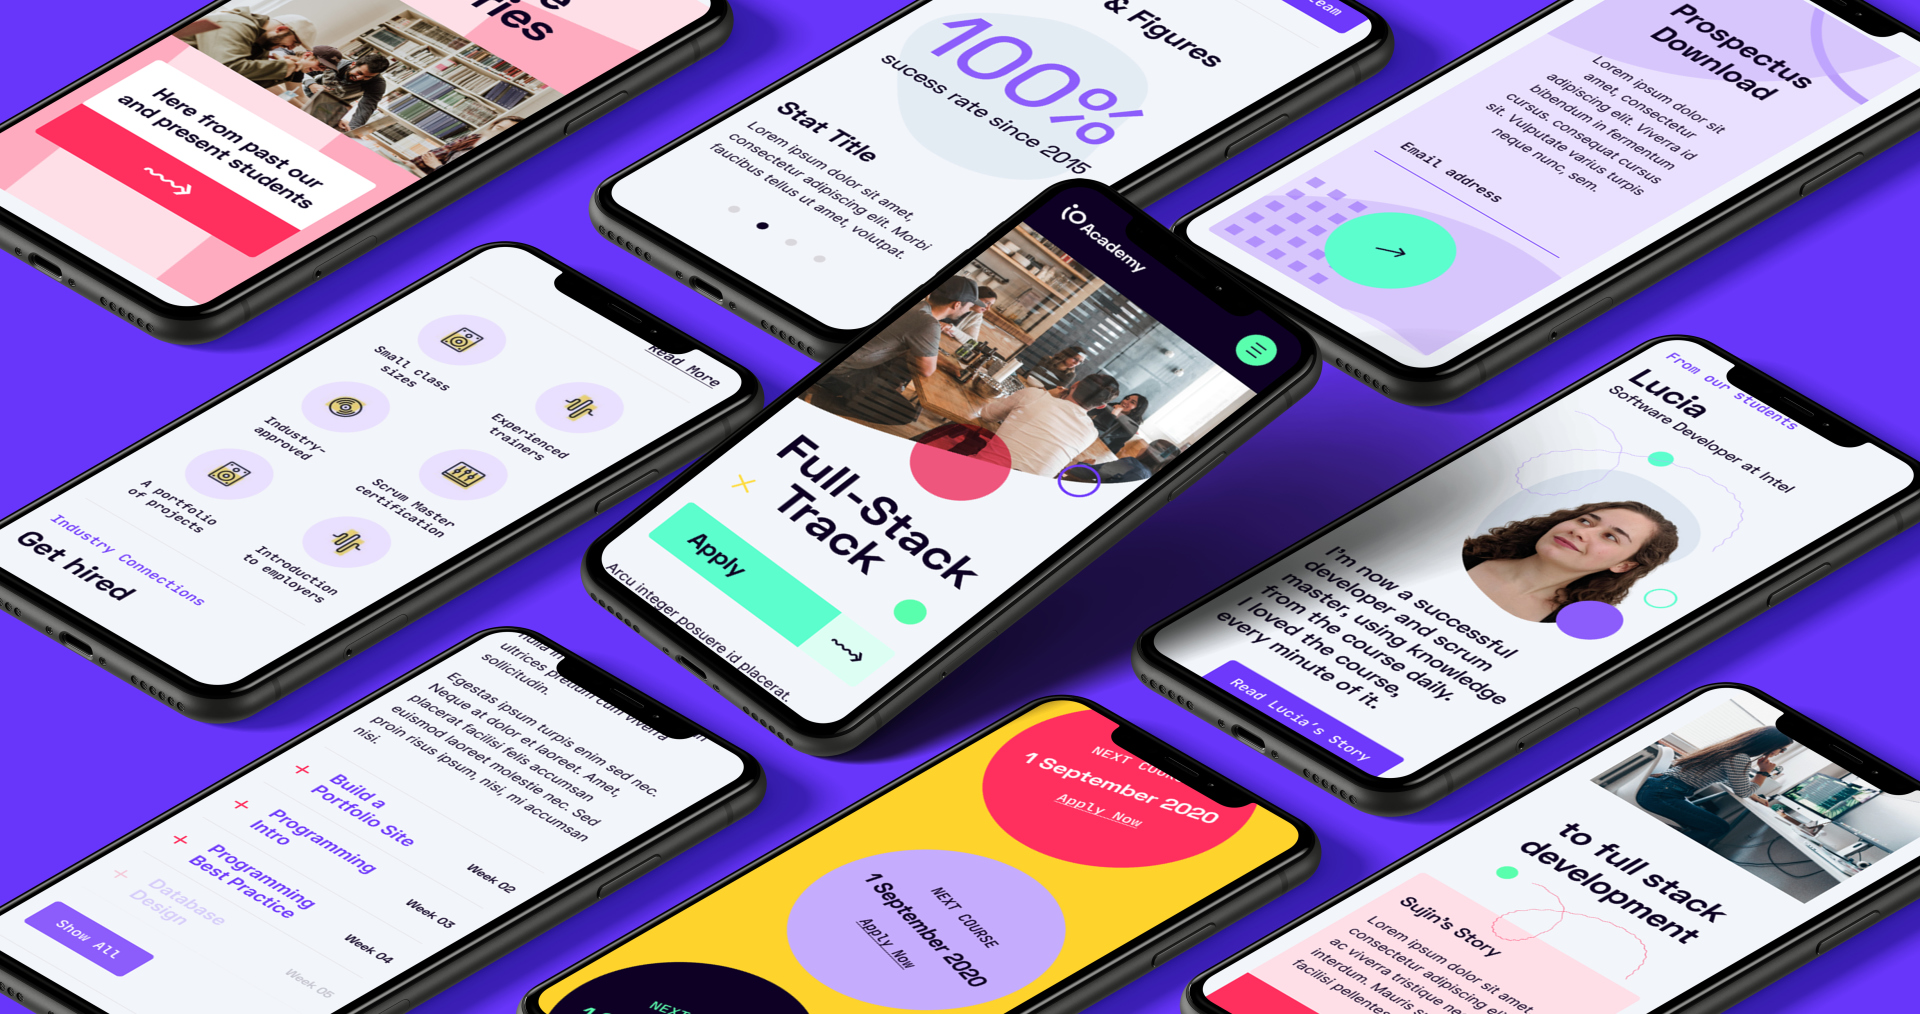 Coding Academy Branding by Fiasco Design – An overhead view of 9 mobile screens showcasing different pages from the iO website